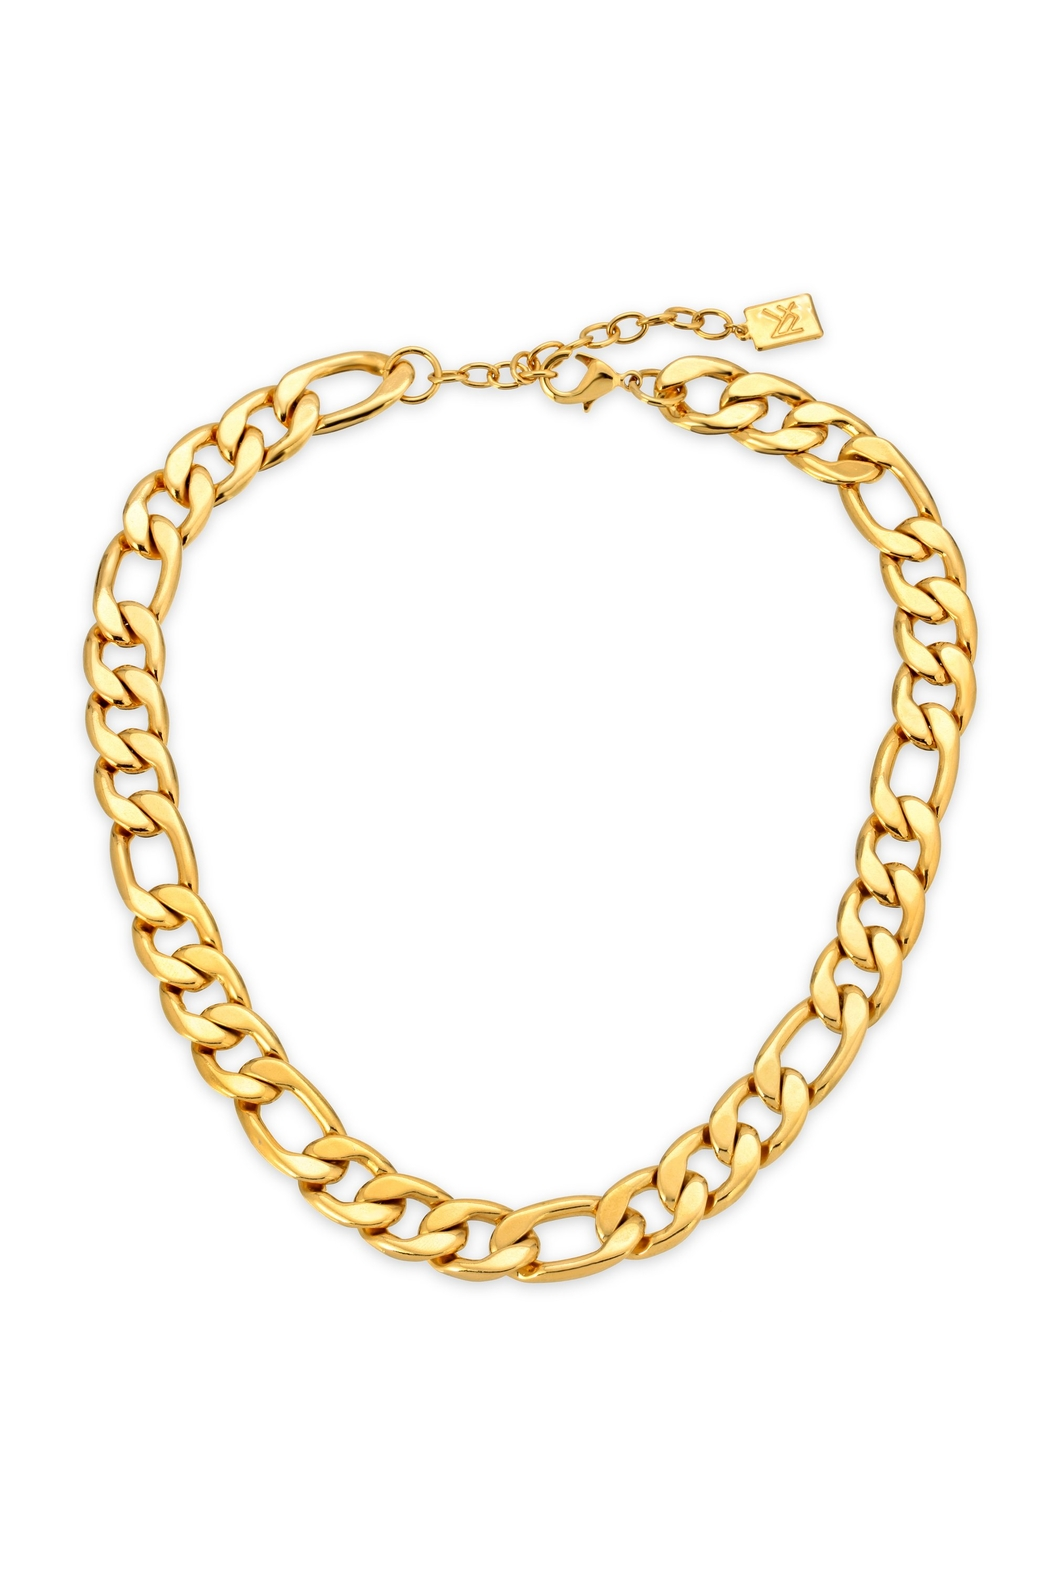 Miranda Frye Brookllyn Chunky Necklace - Front Cropped Image